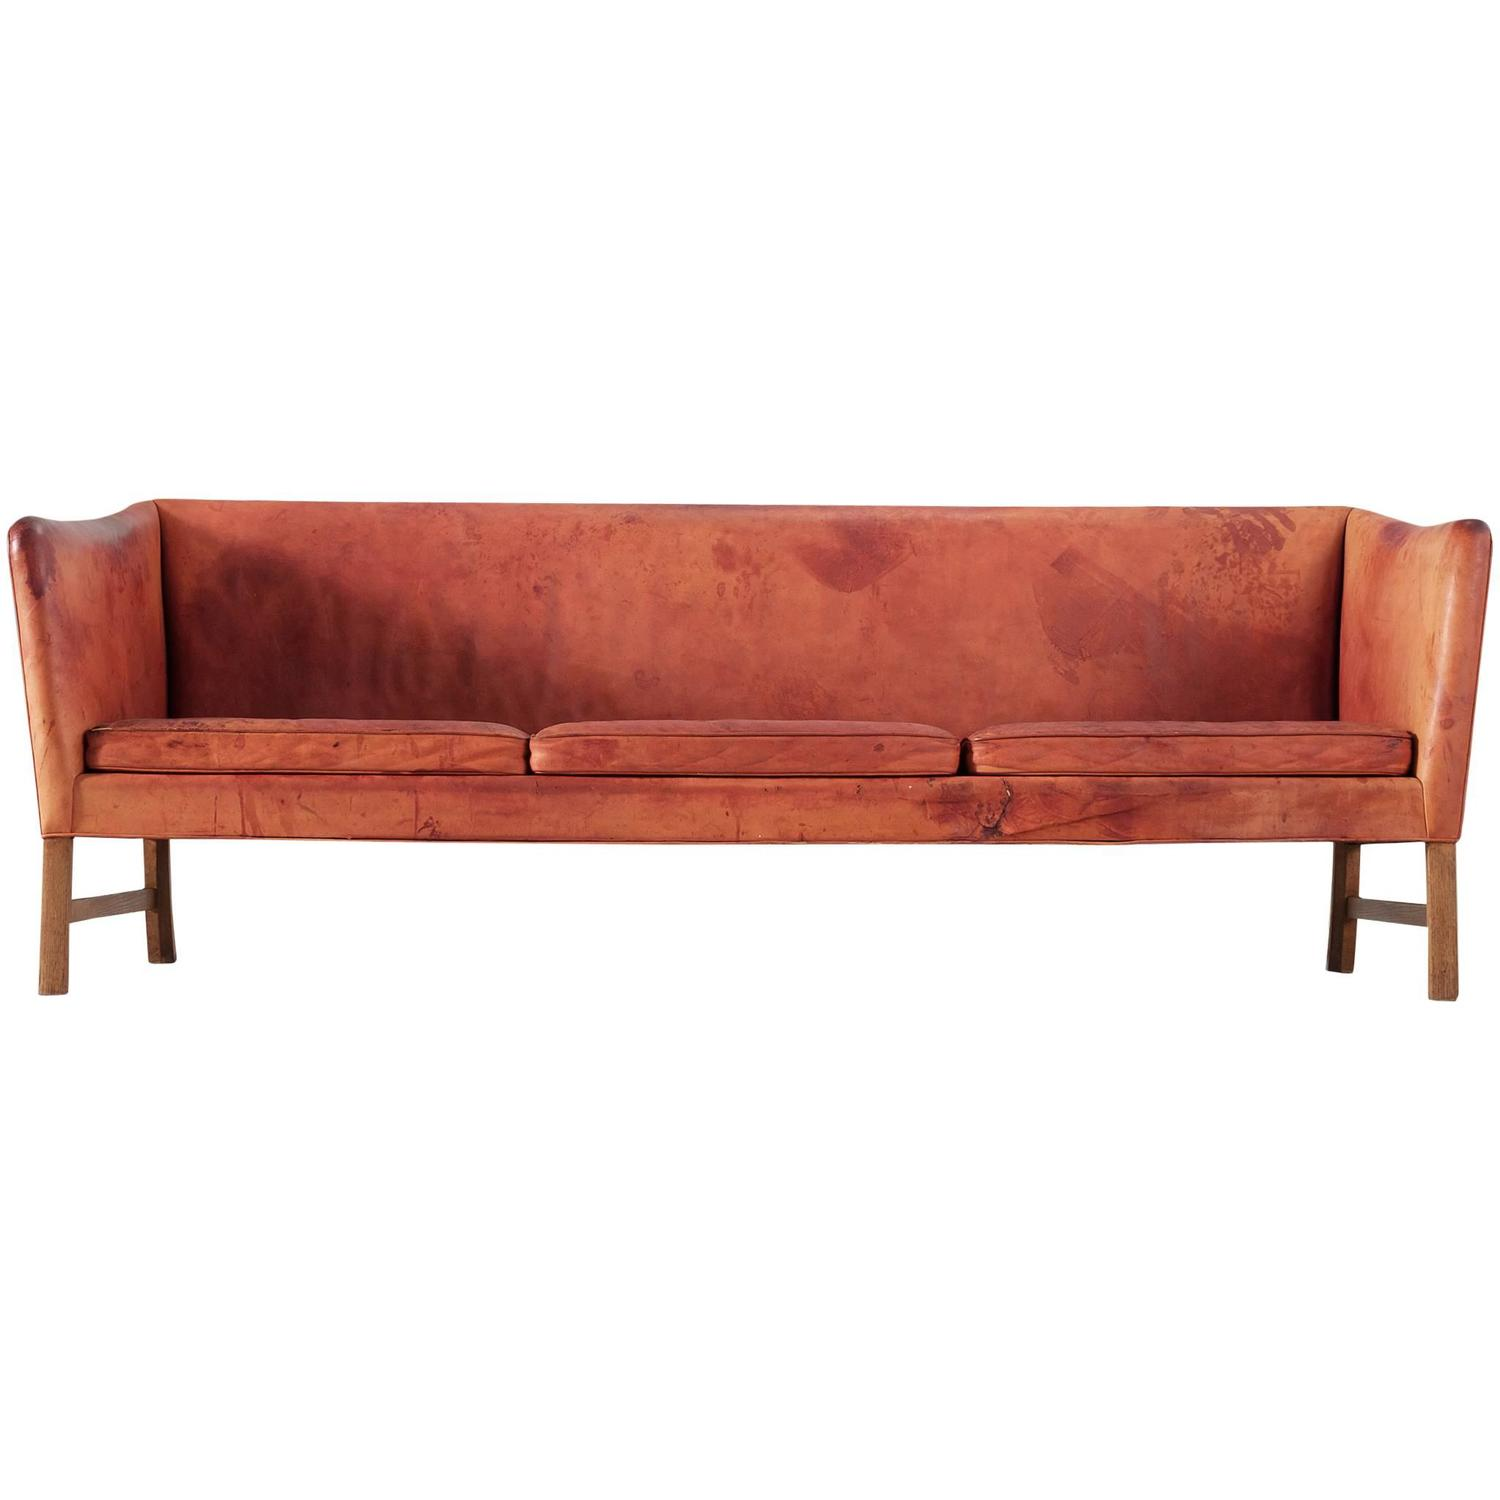 Ole Wanscher Patinated Sofa In Natural Leather For Sale At